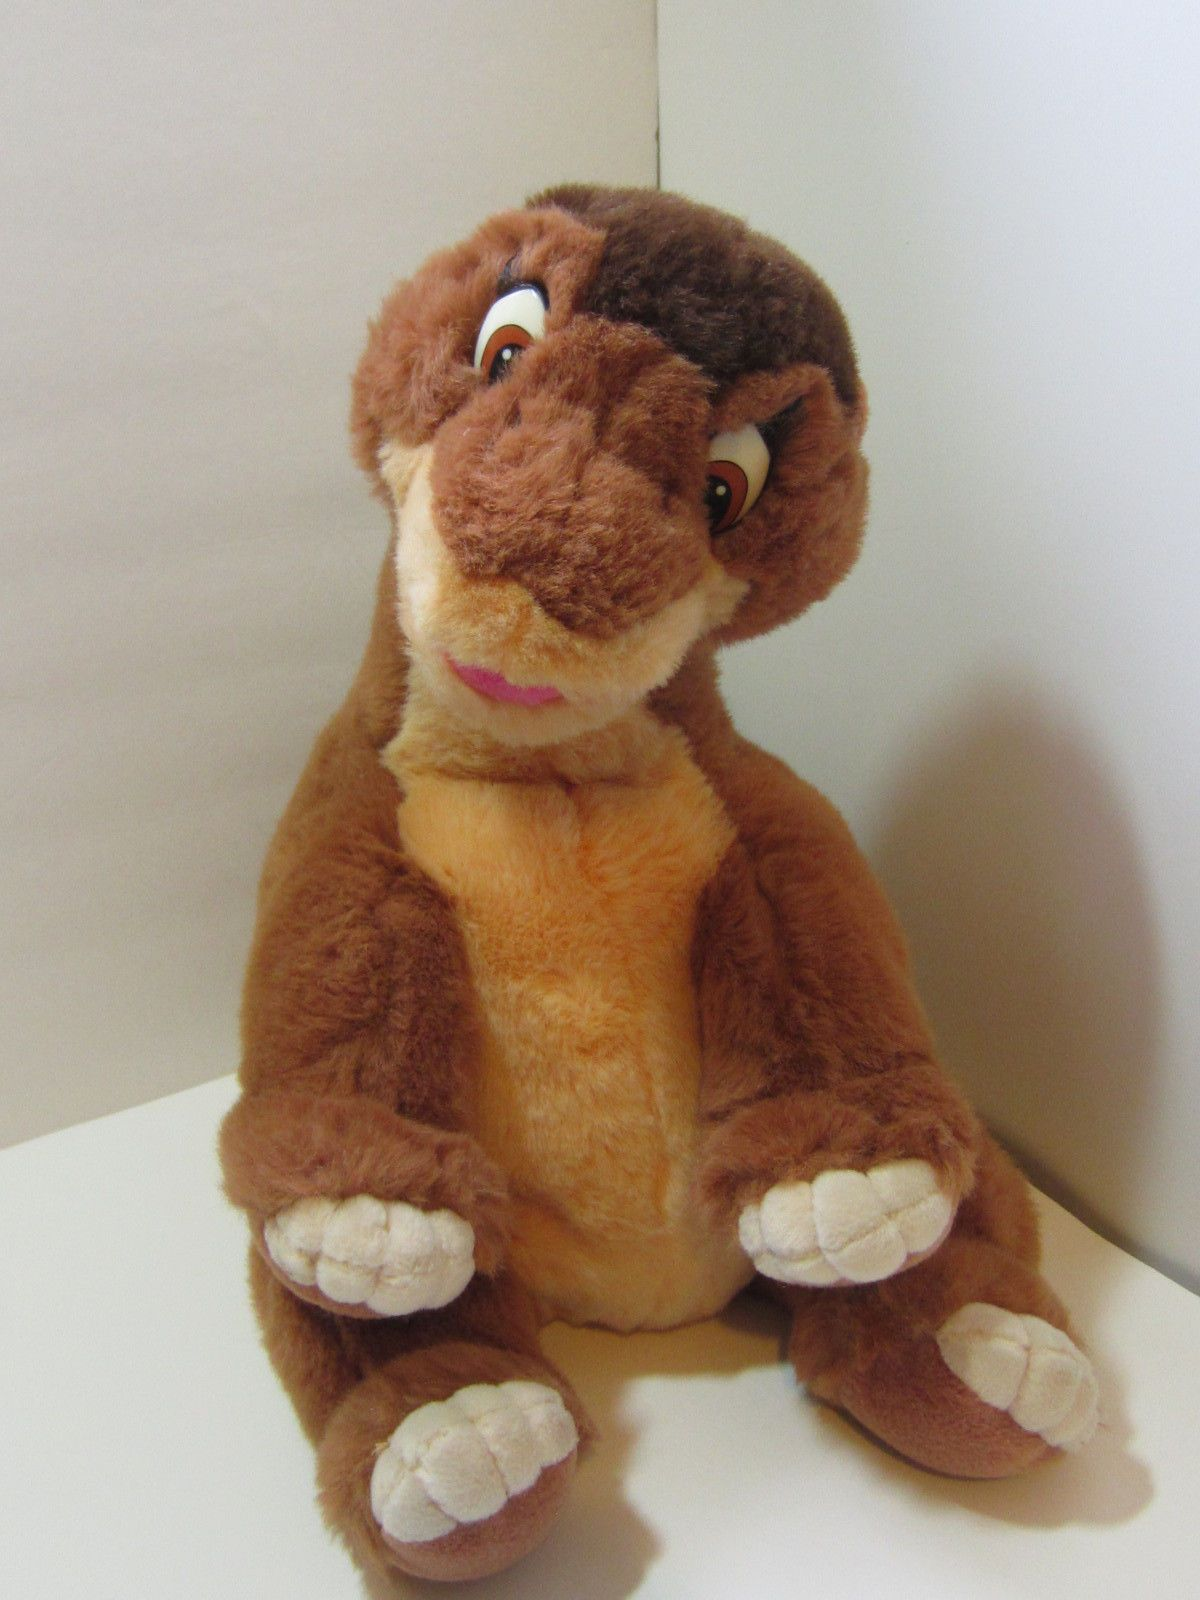 Little Foot Land Before Time Gund Plush 16 Inch Toy Dinosaur Stuffed Animal